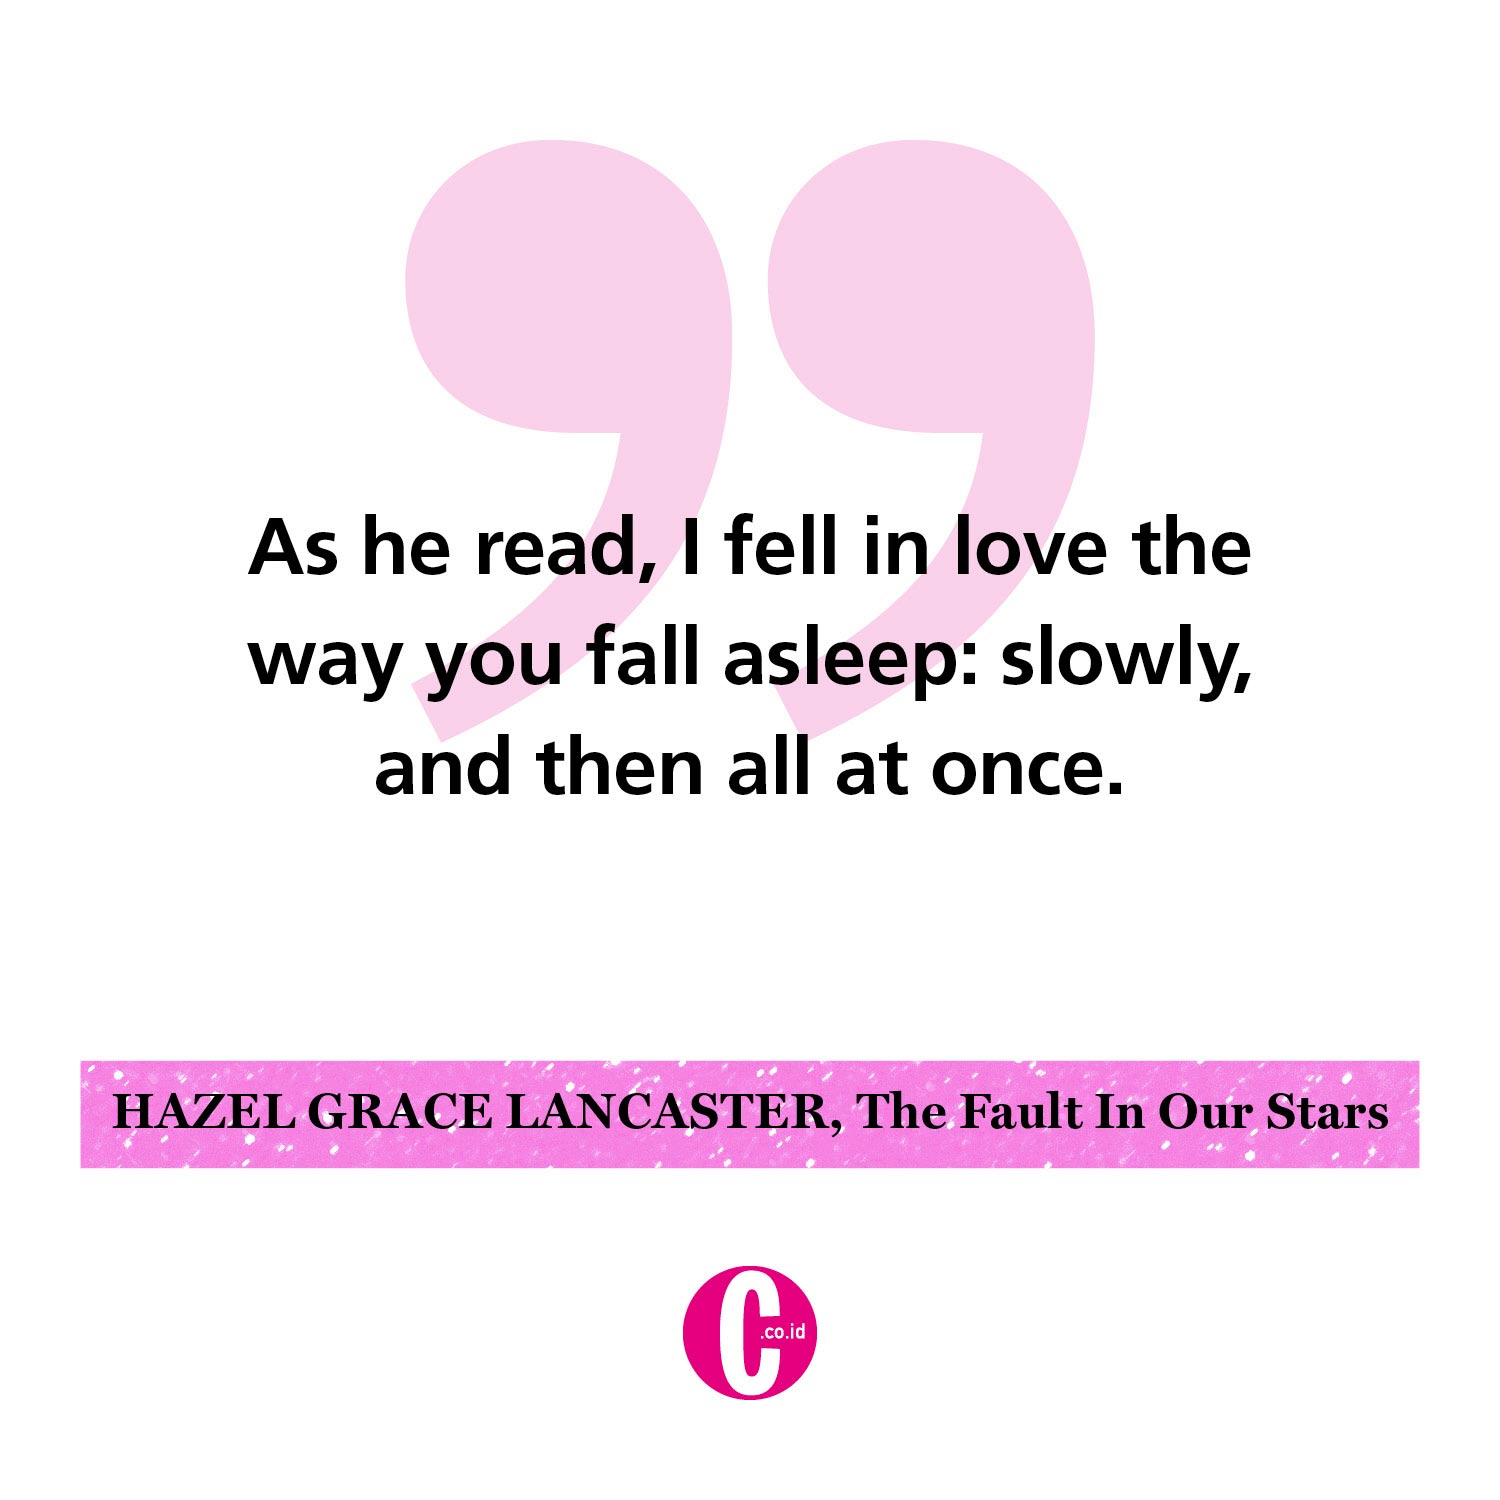 Kata-kata romantis dari Hazel Grace Lancaster, The Fault in Our Stars